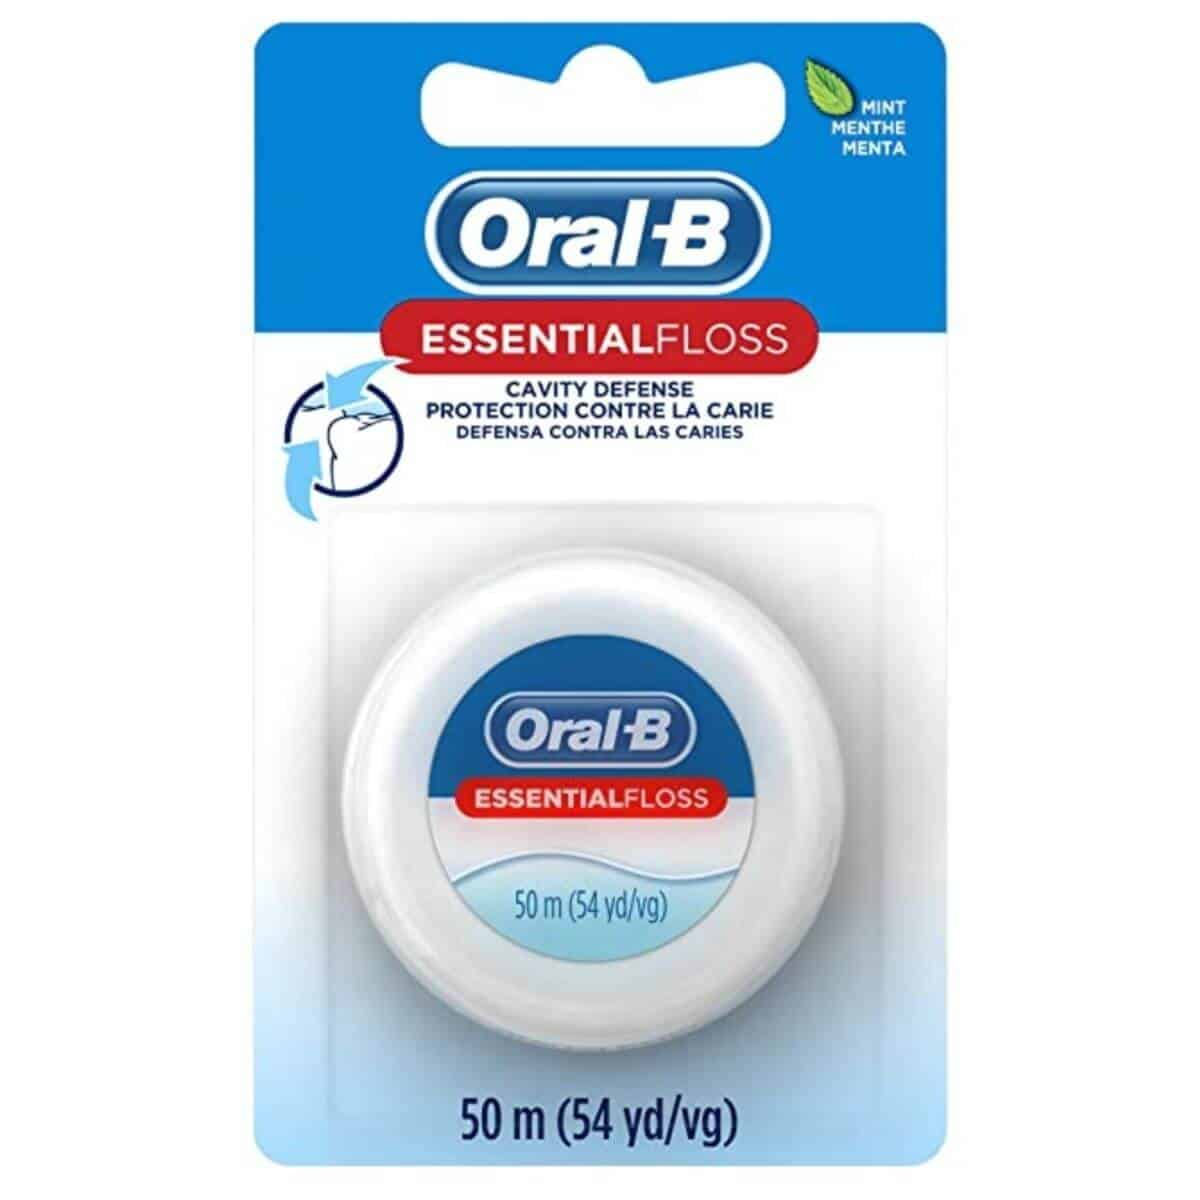 Oral-B floss in its package.